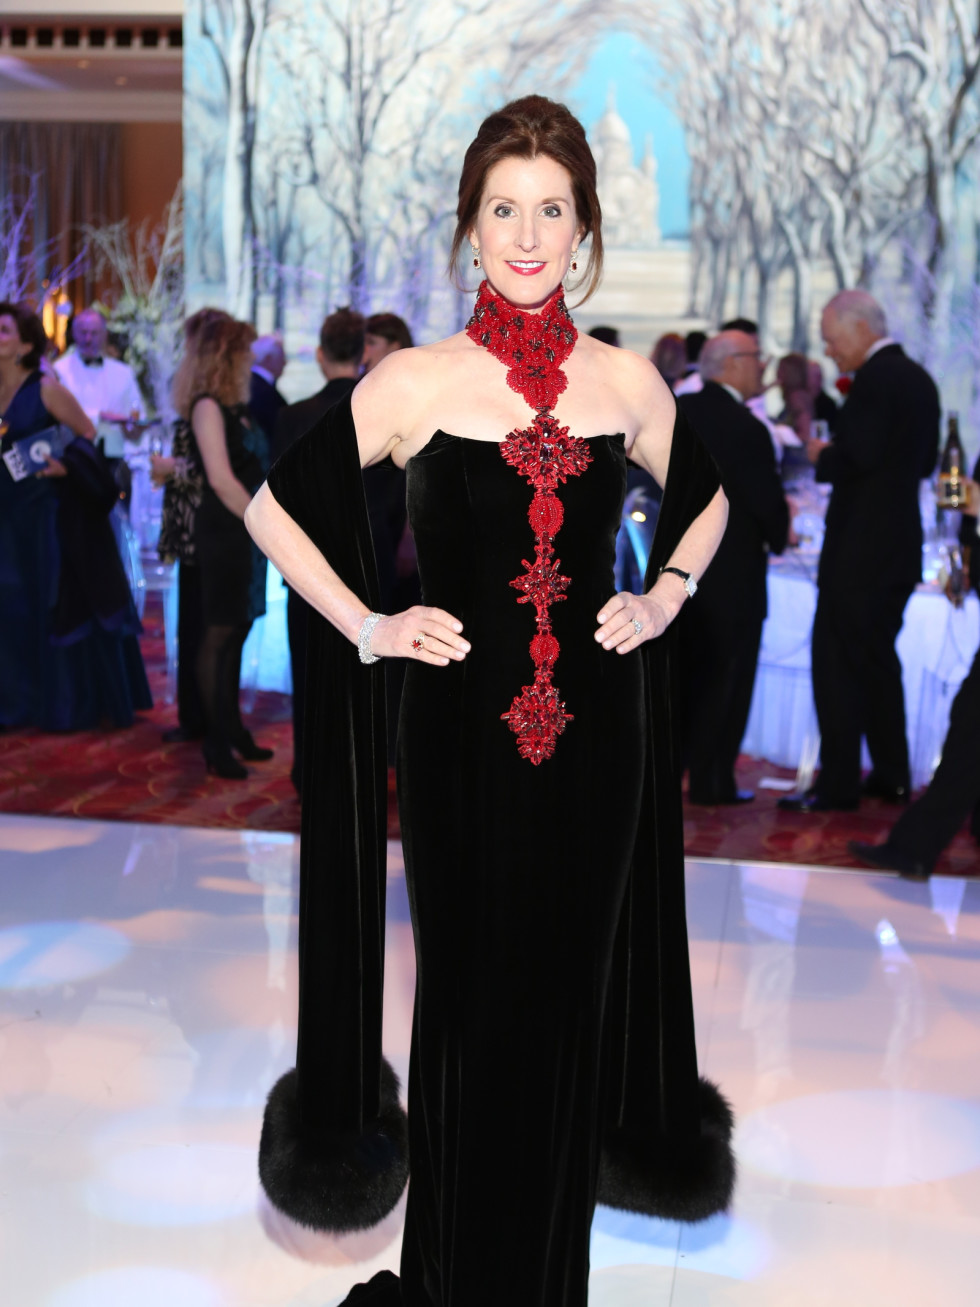 Houston Ballet Ball, Feb. 2016,  Phoebe Tudor in Zang Toi